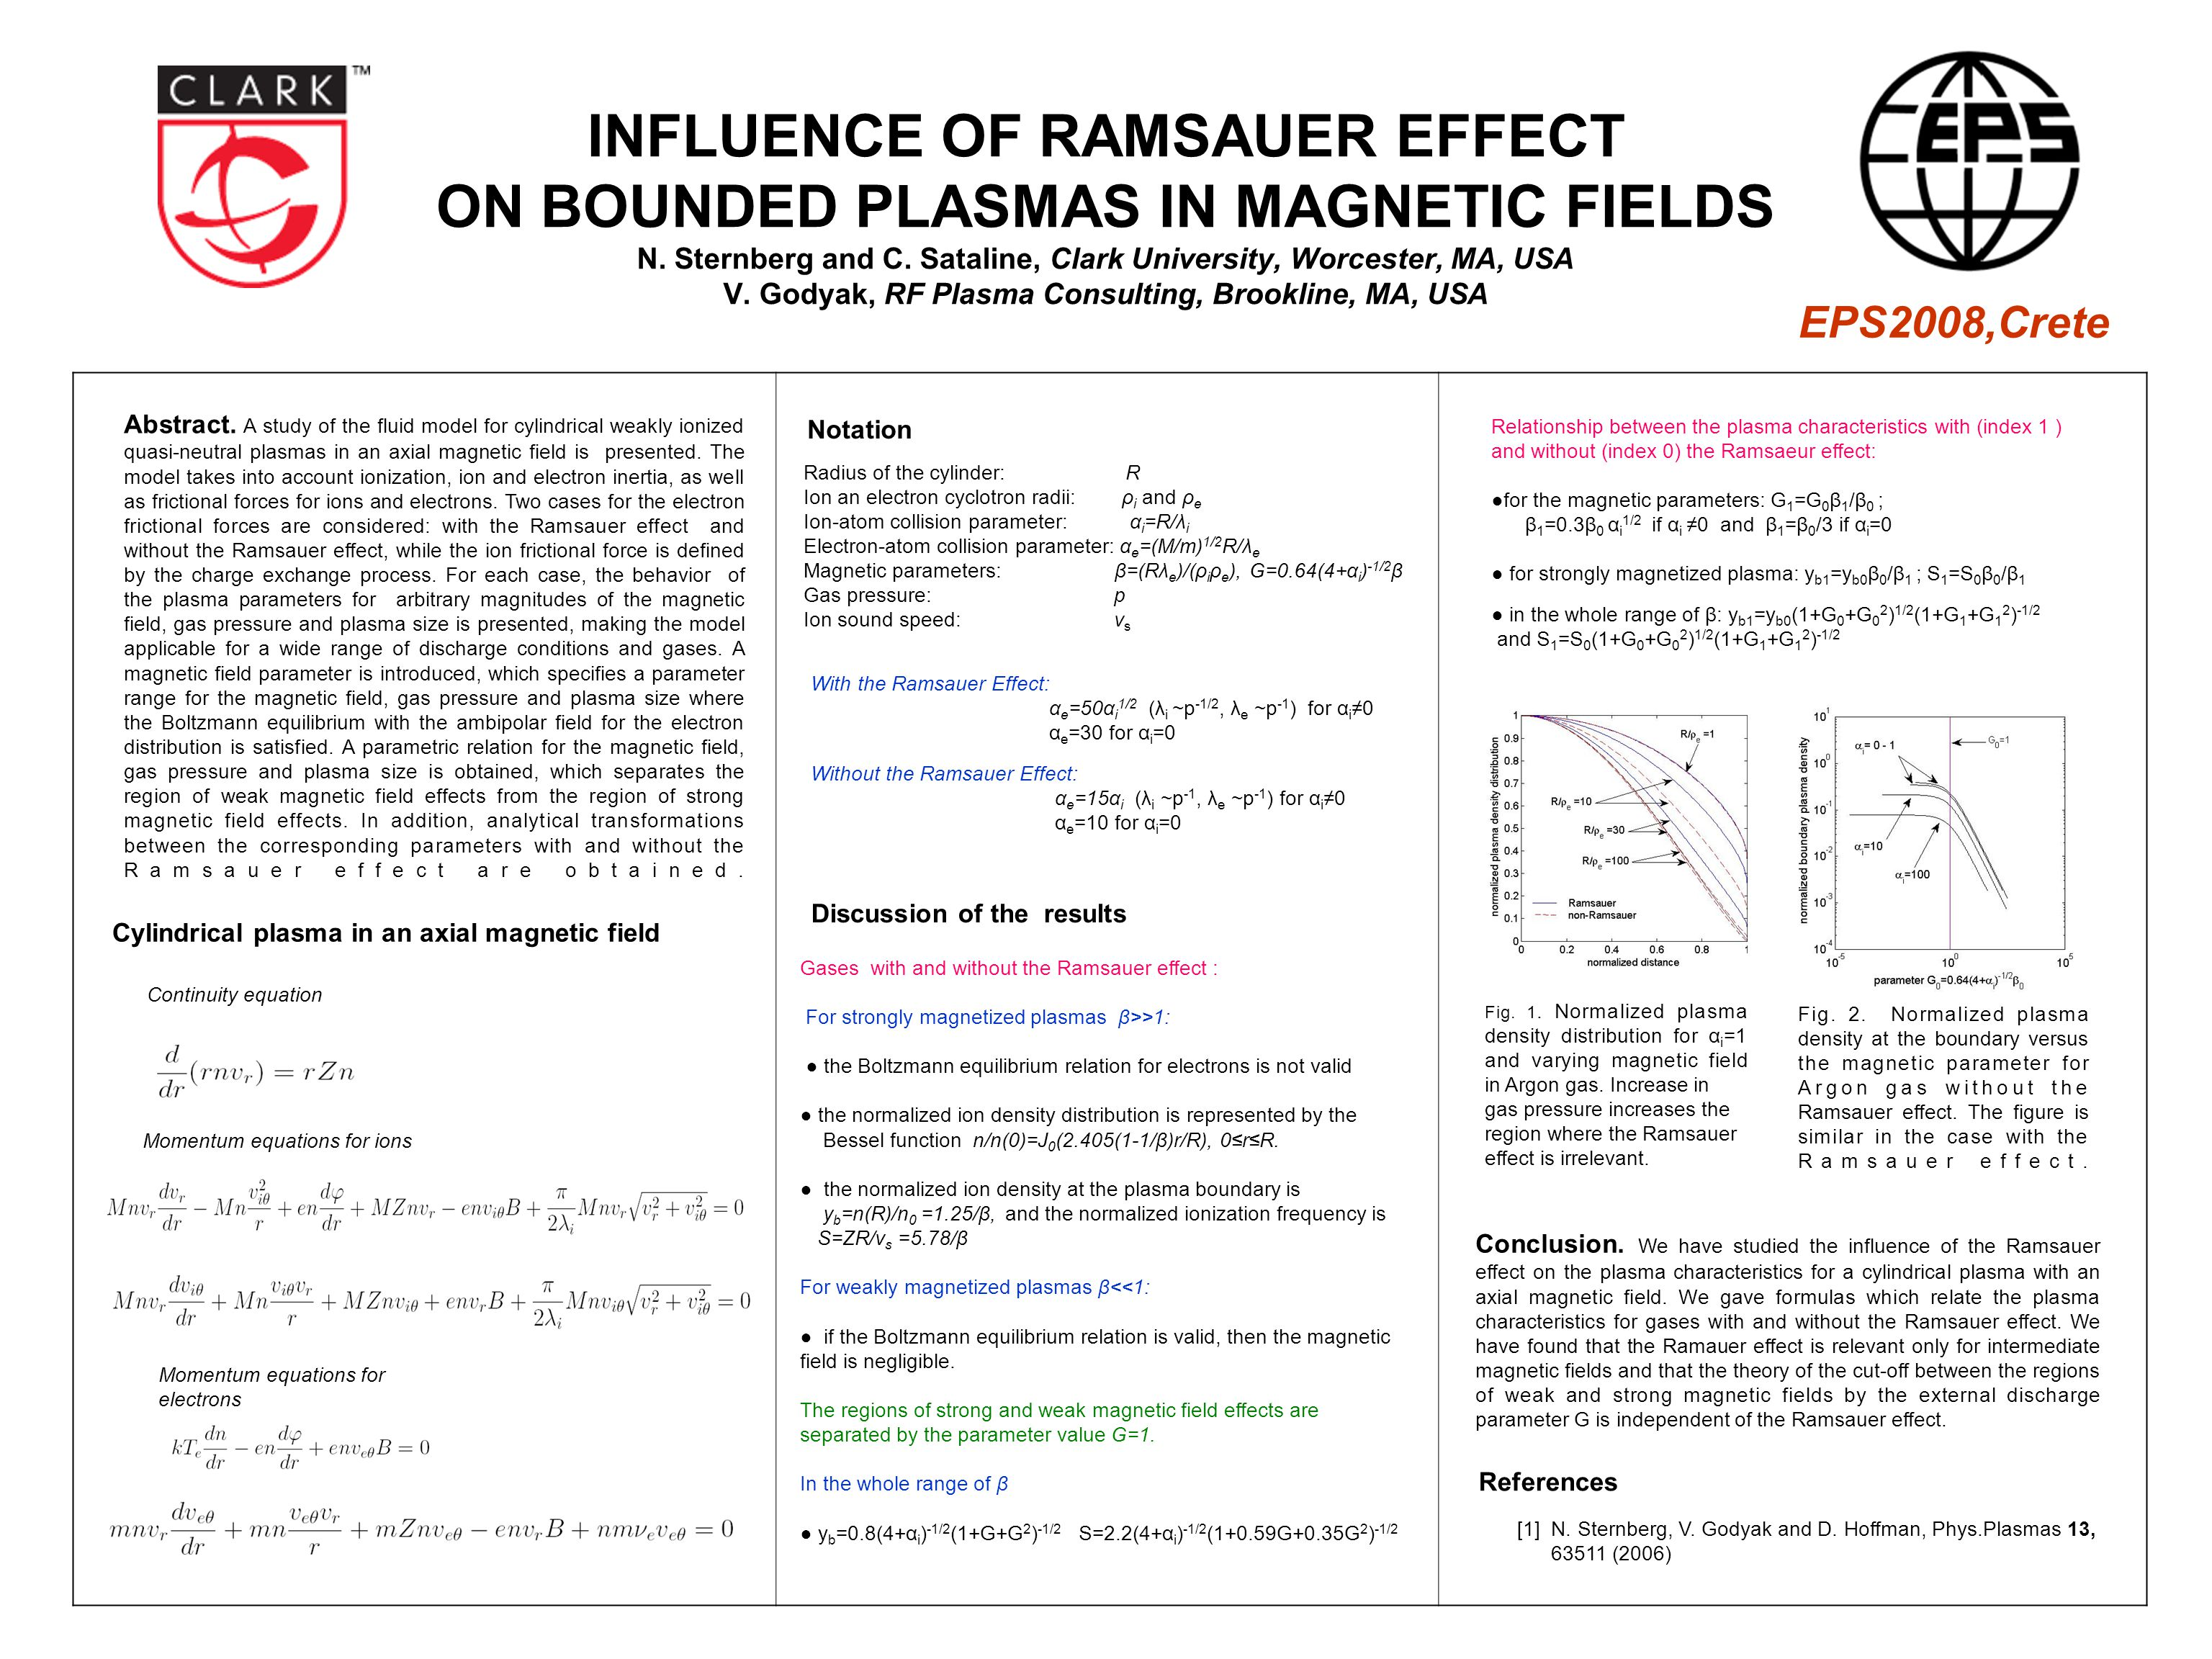 INFLUENCE OF RAMSAUER EFFECT ON BOUNDED PLASMAS IN MAGNETIC FIELDS N.